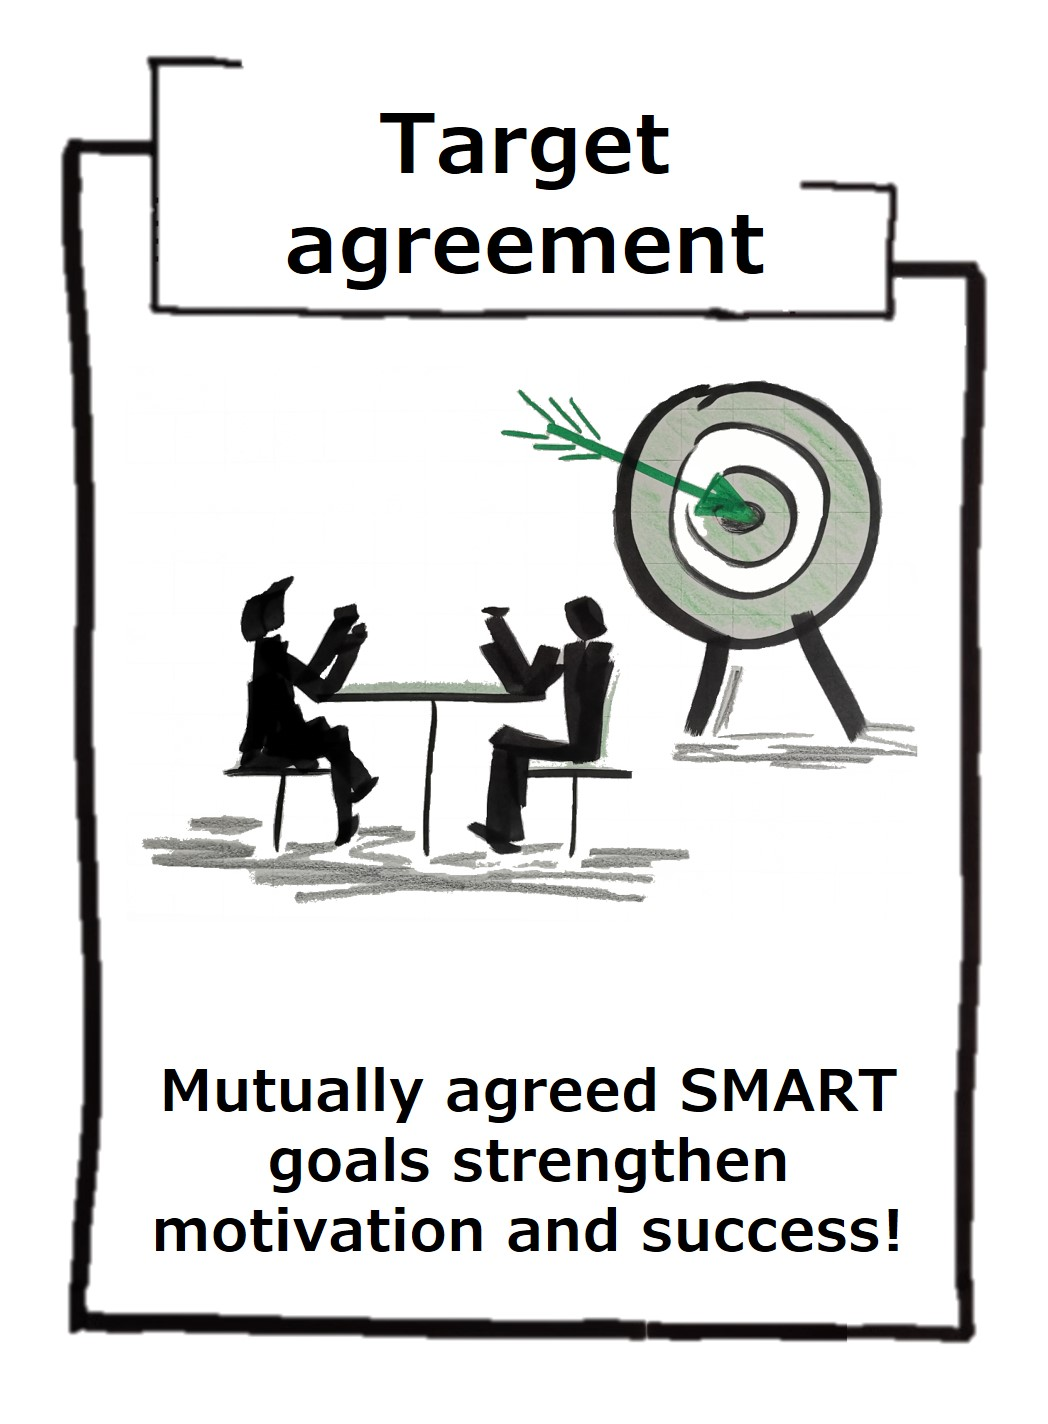 A target agreement is necessary, meaningful and helpful to strengthen motivation and success